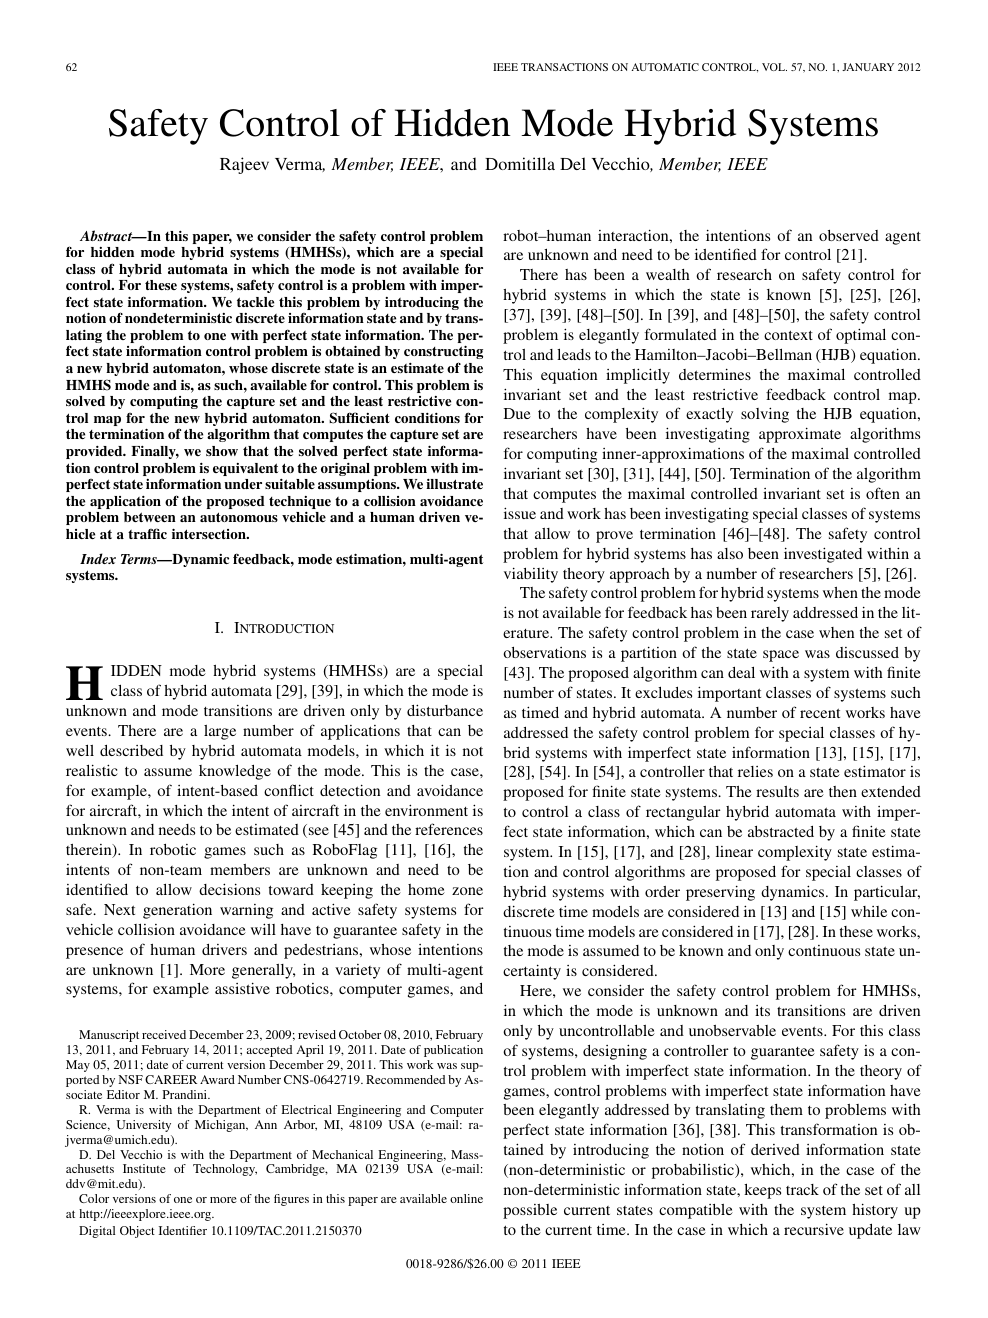 011 Research Paper Free Ieee Papers Computer Unusual Science On In For Full